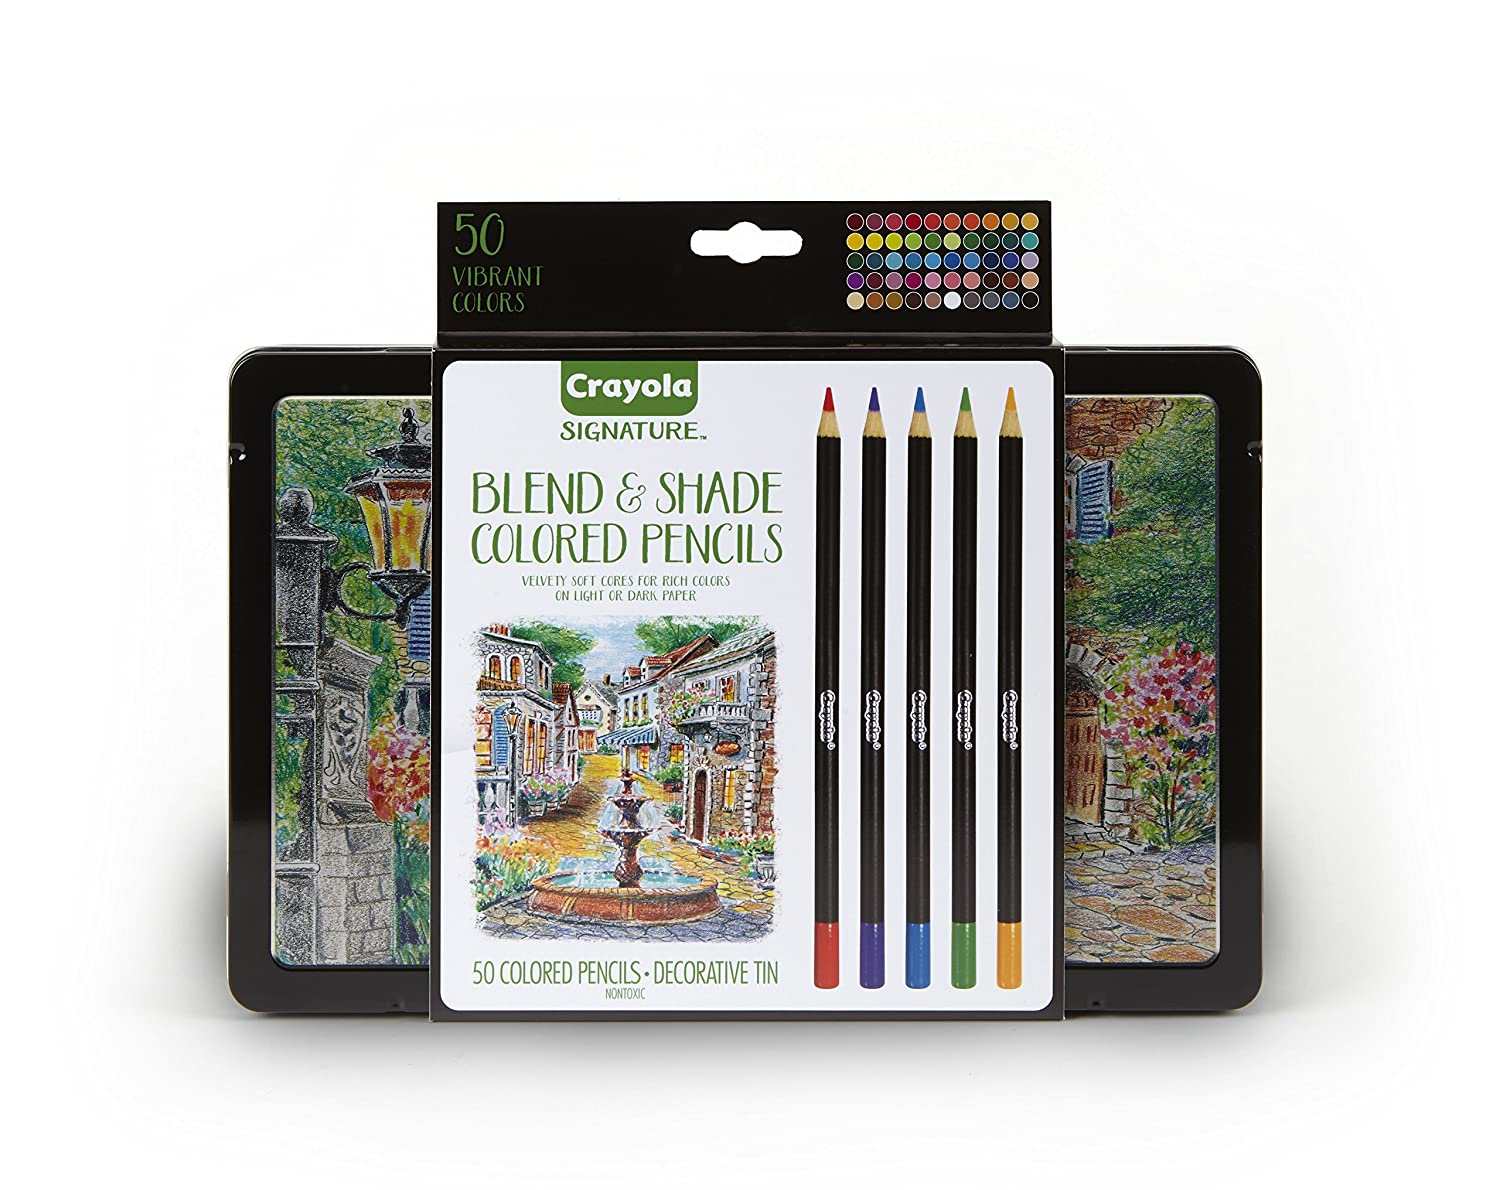 The shoppers apprentice for older kids and kids at heart get this crayola signature blend shade colored pencils 50 count set for 1305 regularly 3397 perfect for shading fandeluxe Choice Image